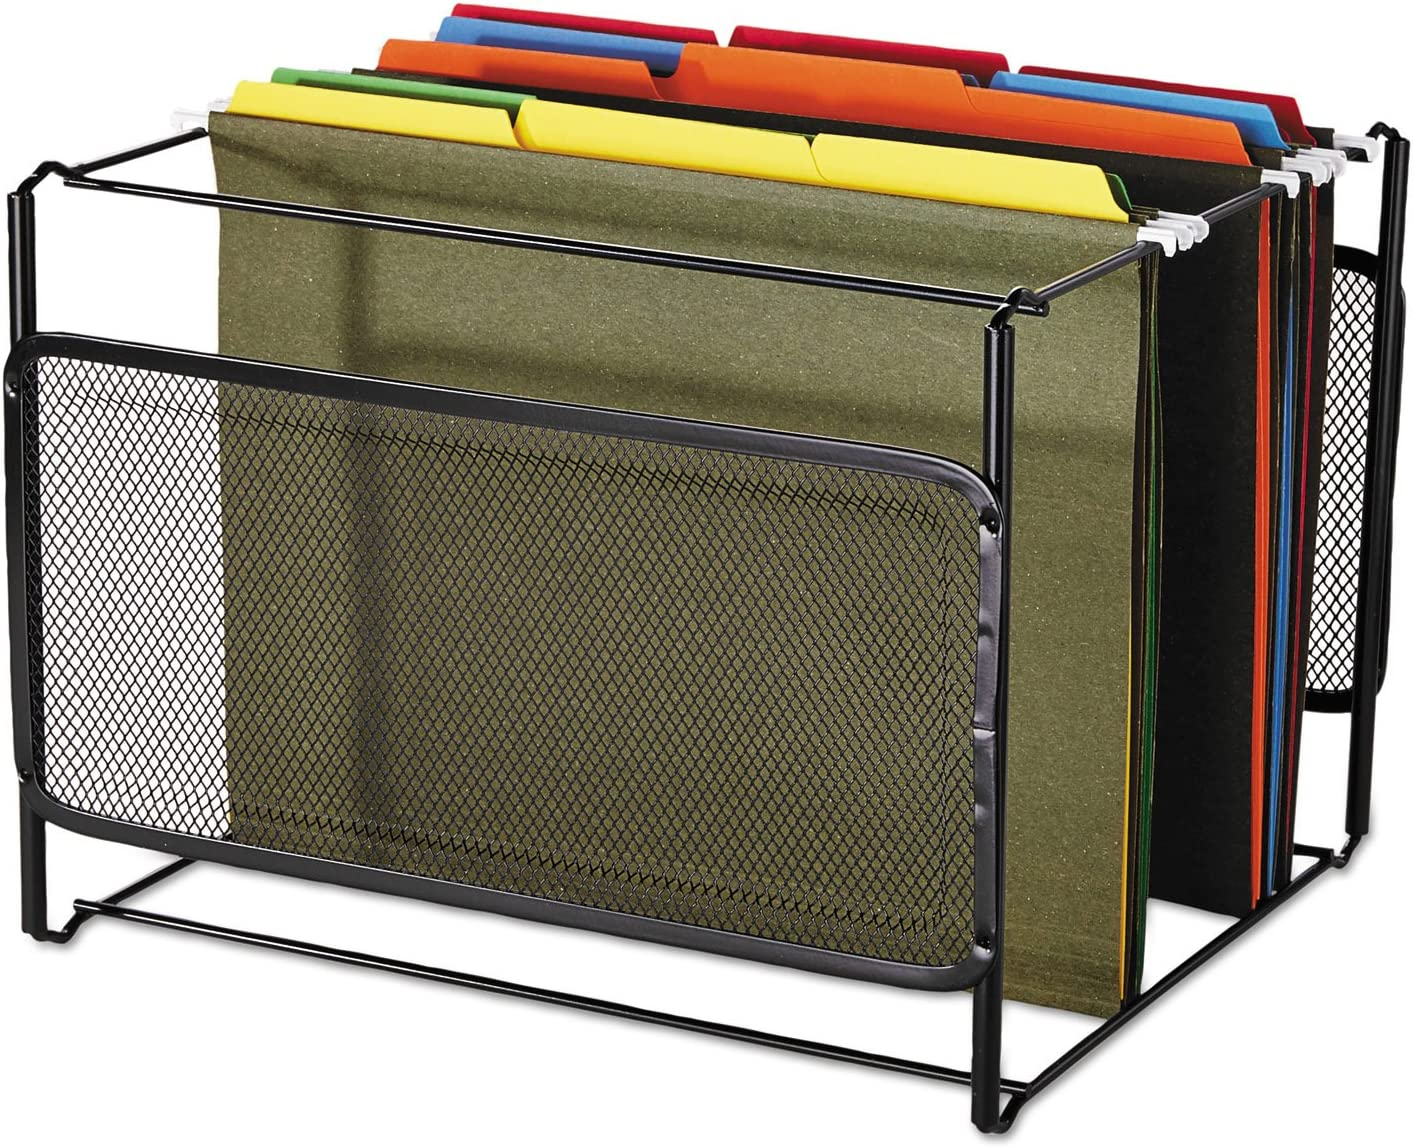 Wire ELDON Office Products 22191 Letter Size Mesh File Frame Holder Black 12 3//8 x 11 3//8 x 9 5//8